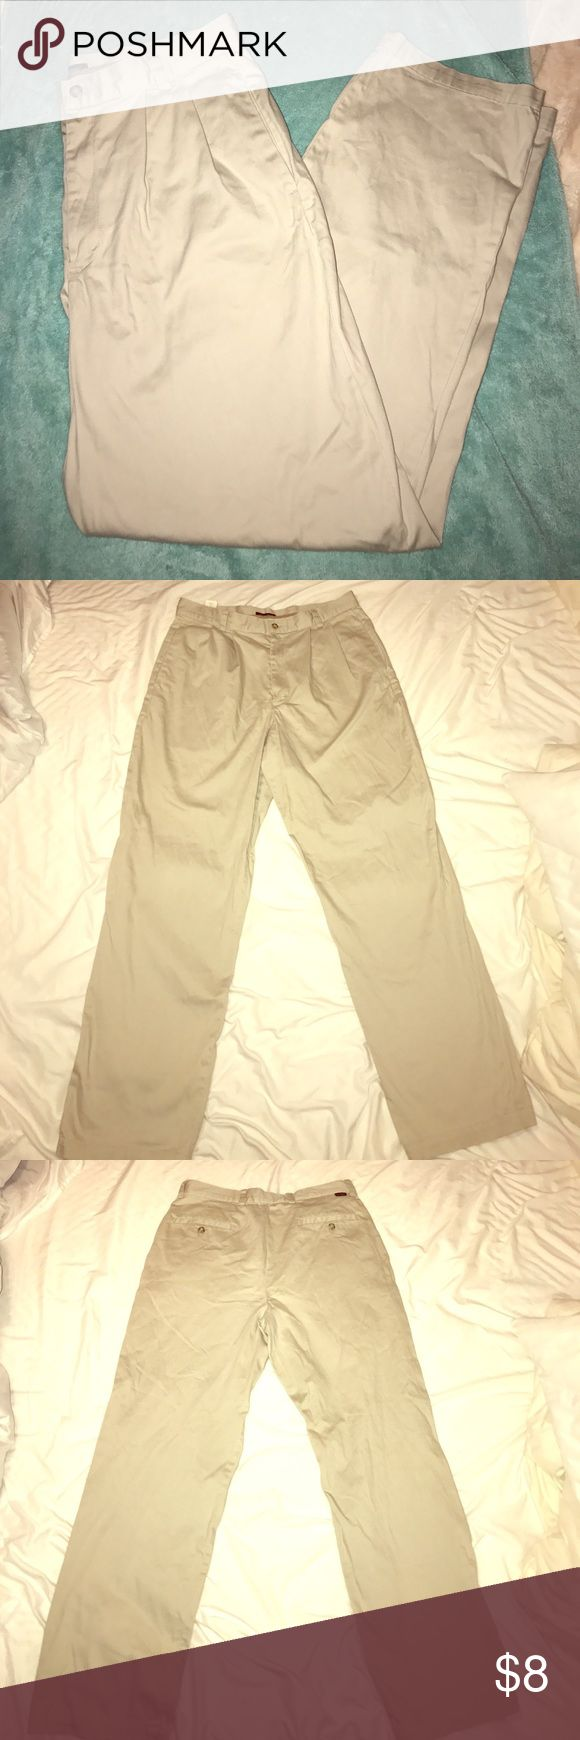 Dockers Khaki Slacks Men's 34W x 32L Excellent condition Khaki colored men's Docker brand slacks. Two pockets on each side and two in the back side with button closure. Front side is a zip up closure with button closure. Size 34Wx 32L. No holes rips or tears!!! Dockers Pants Dress